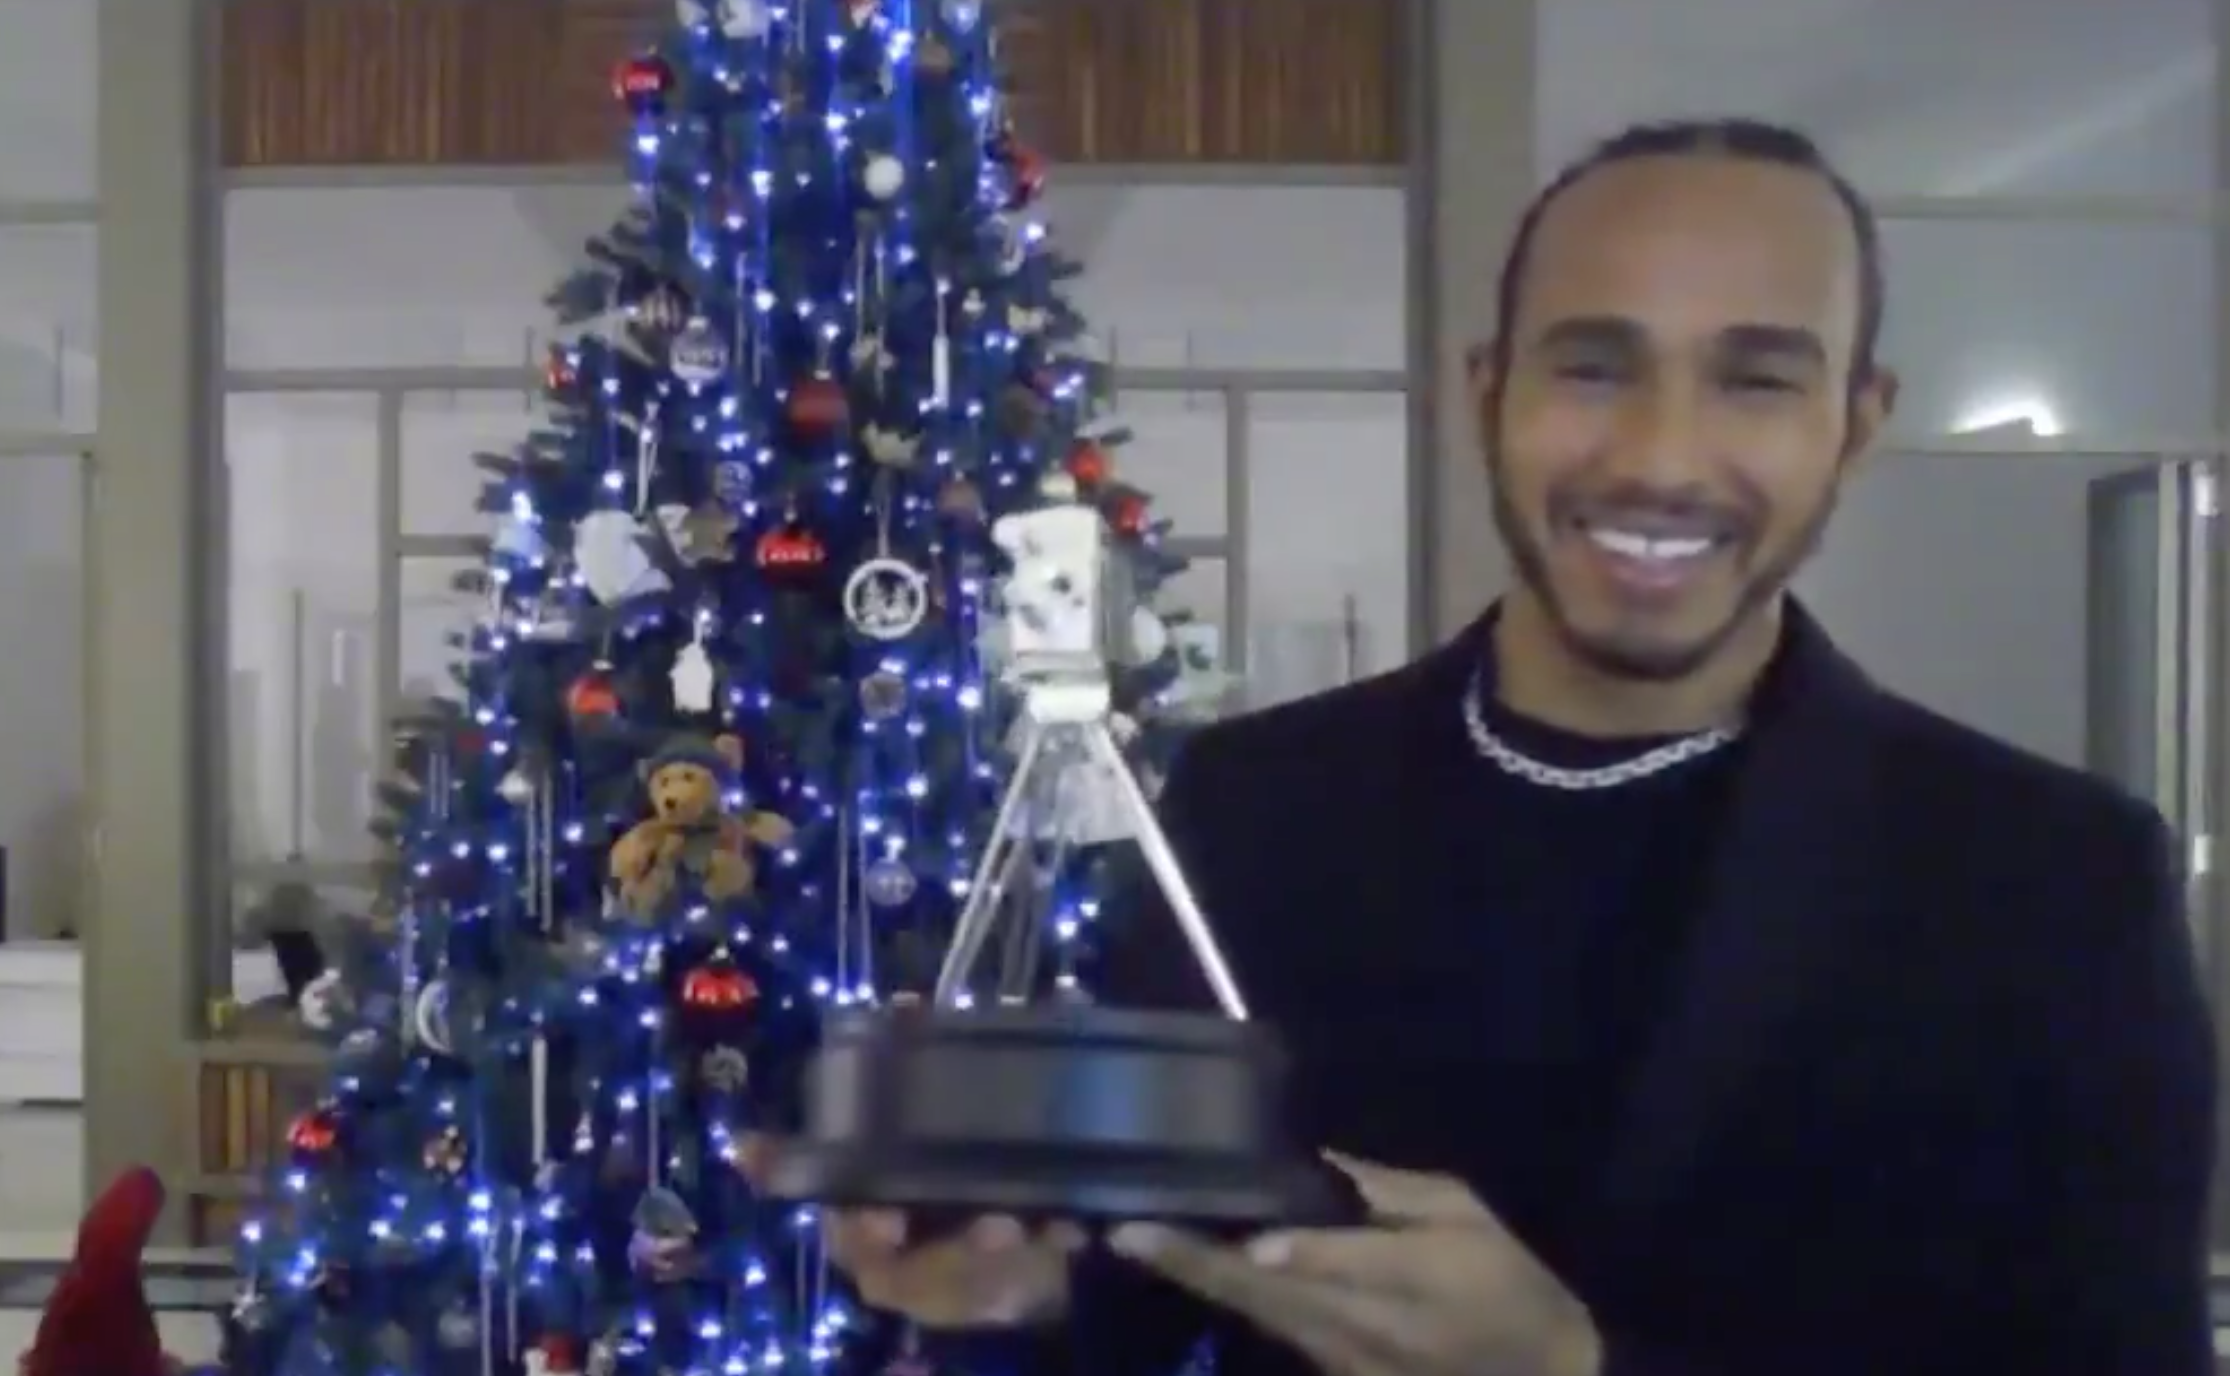 Formula 1 star Lewis Hamilton wins 2020 BBC Sports Personality of the Year award with Liverpool captain Jordan Henderson finishing second